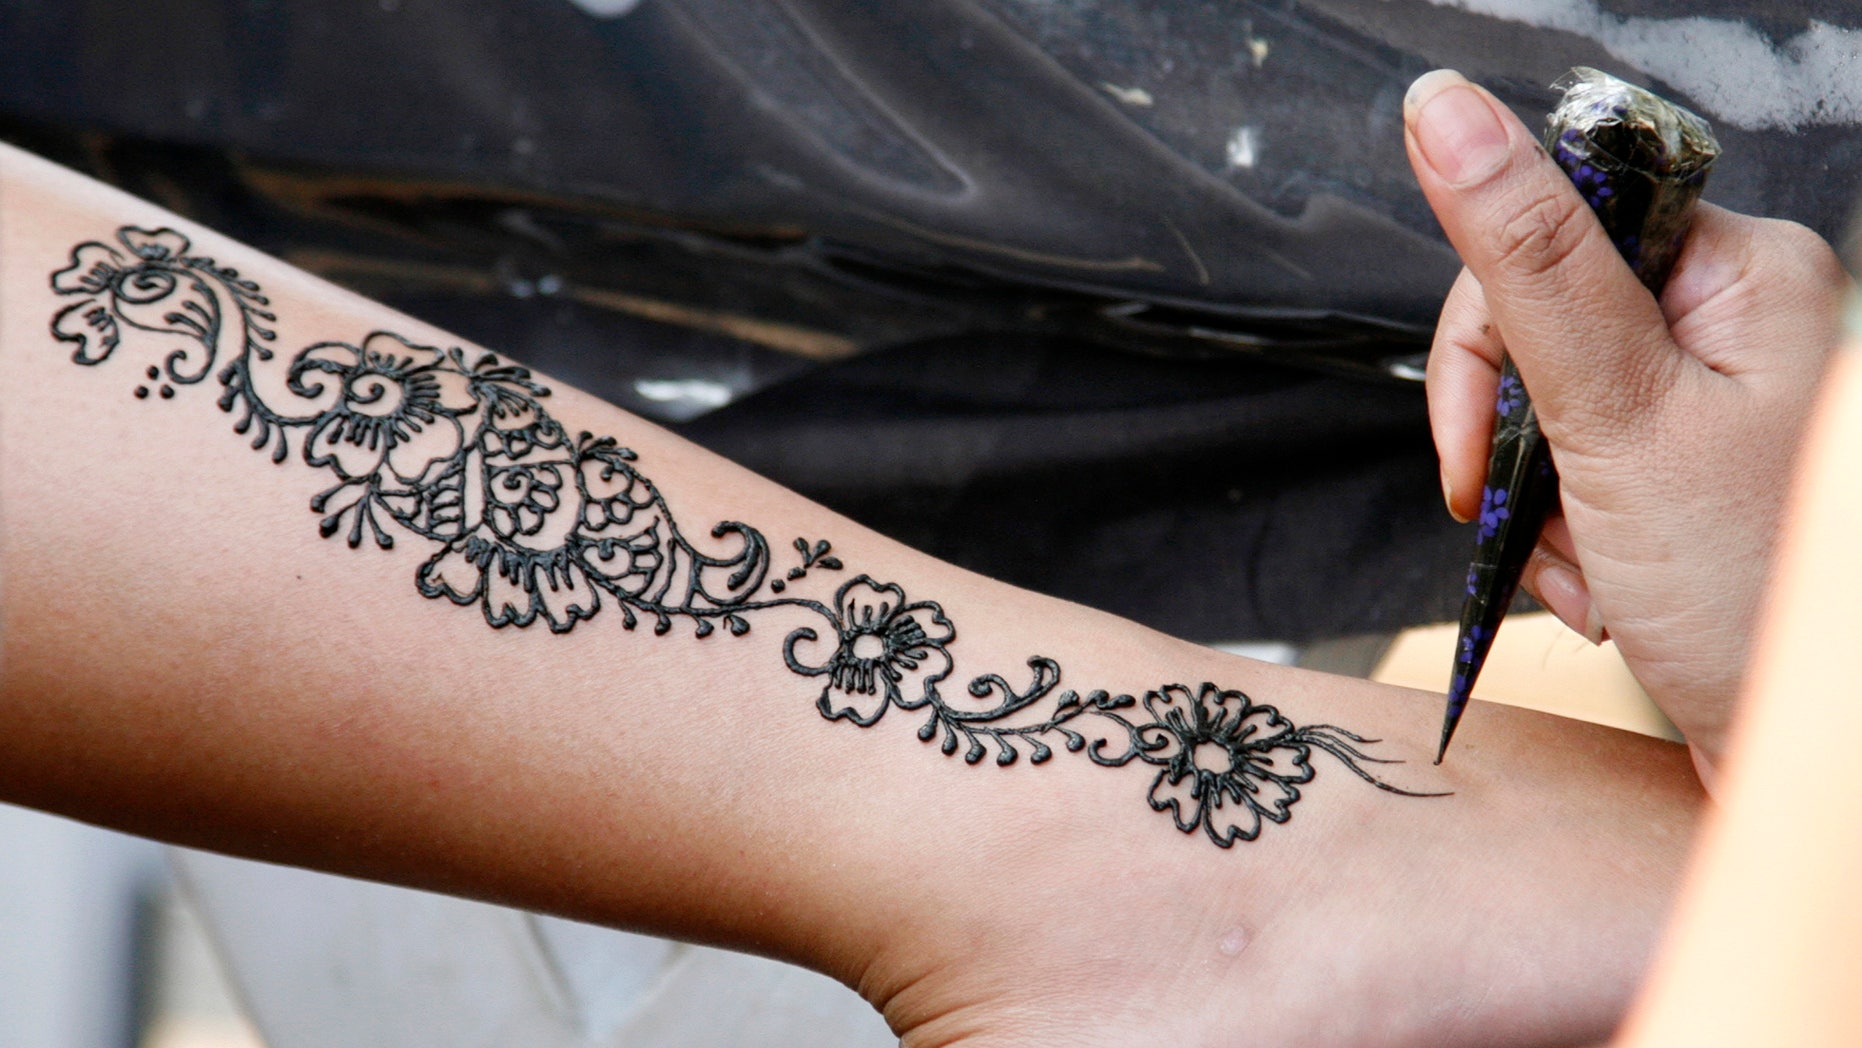 An artist demonstrates her skills with henna at a showcase of tattoo art during the Singapore Art Show 2007. (REUTERS/Rob Dawson)